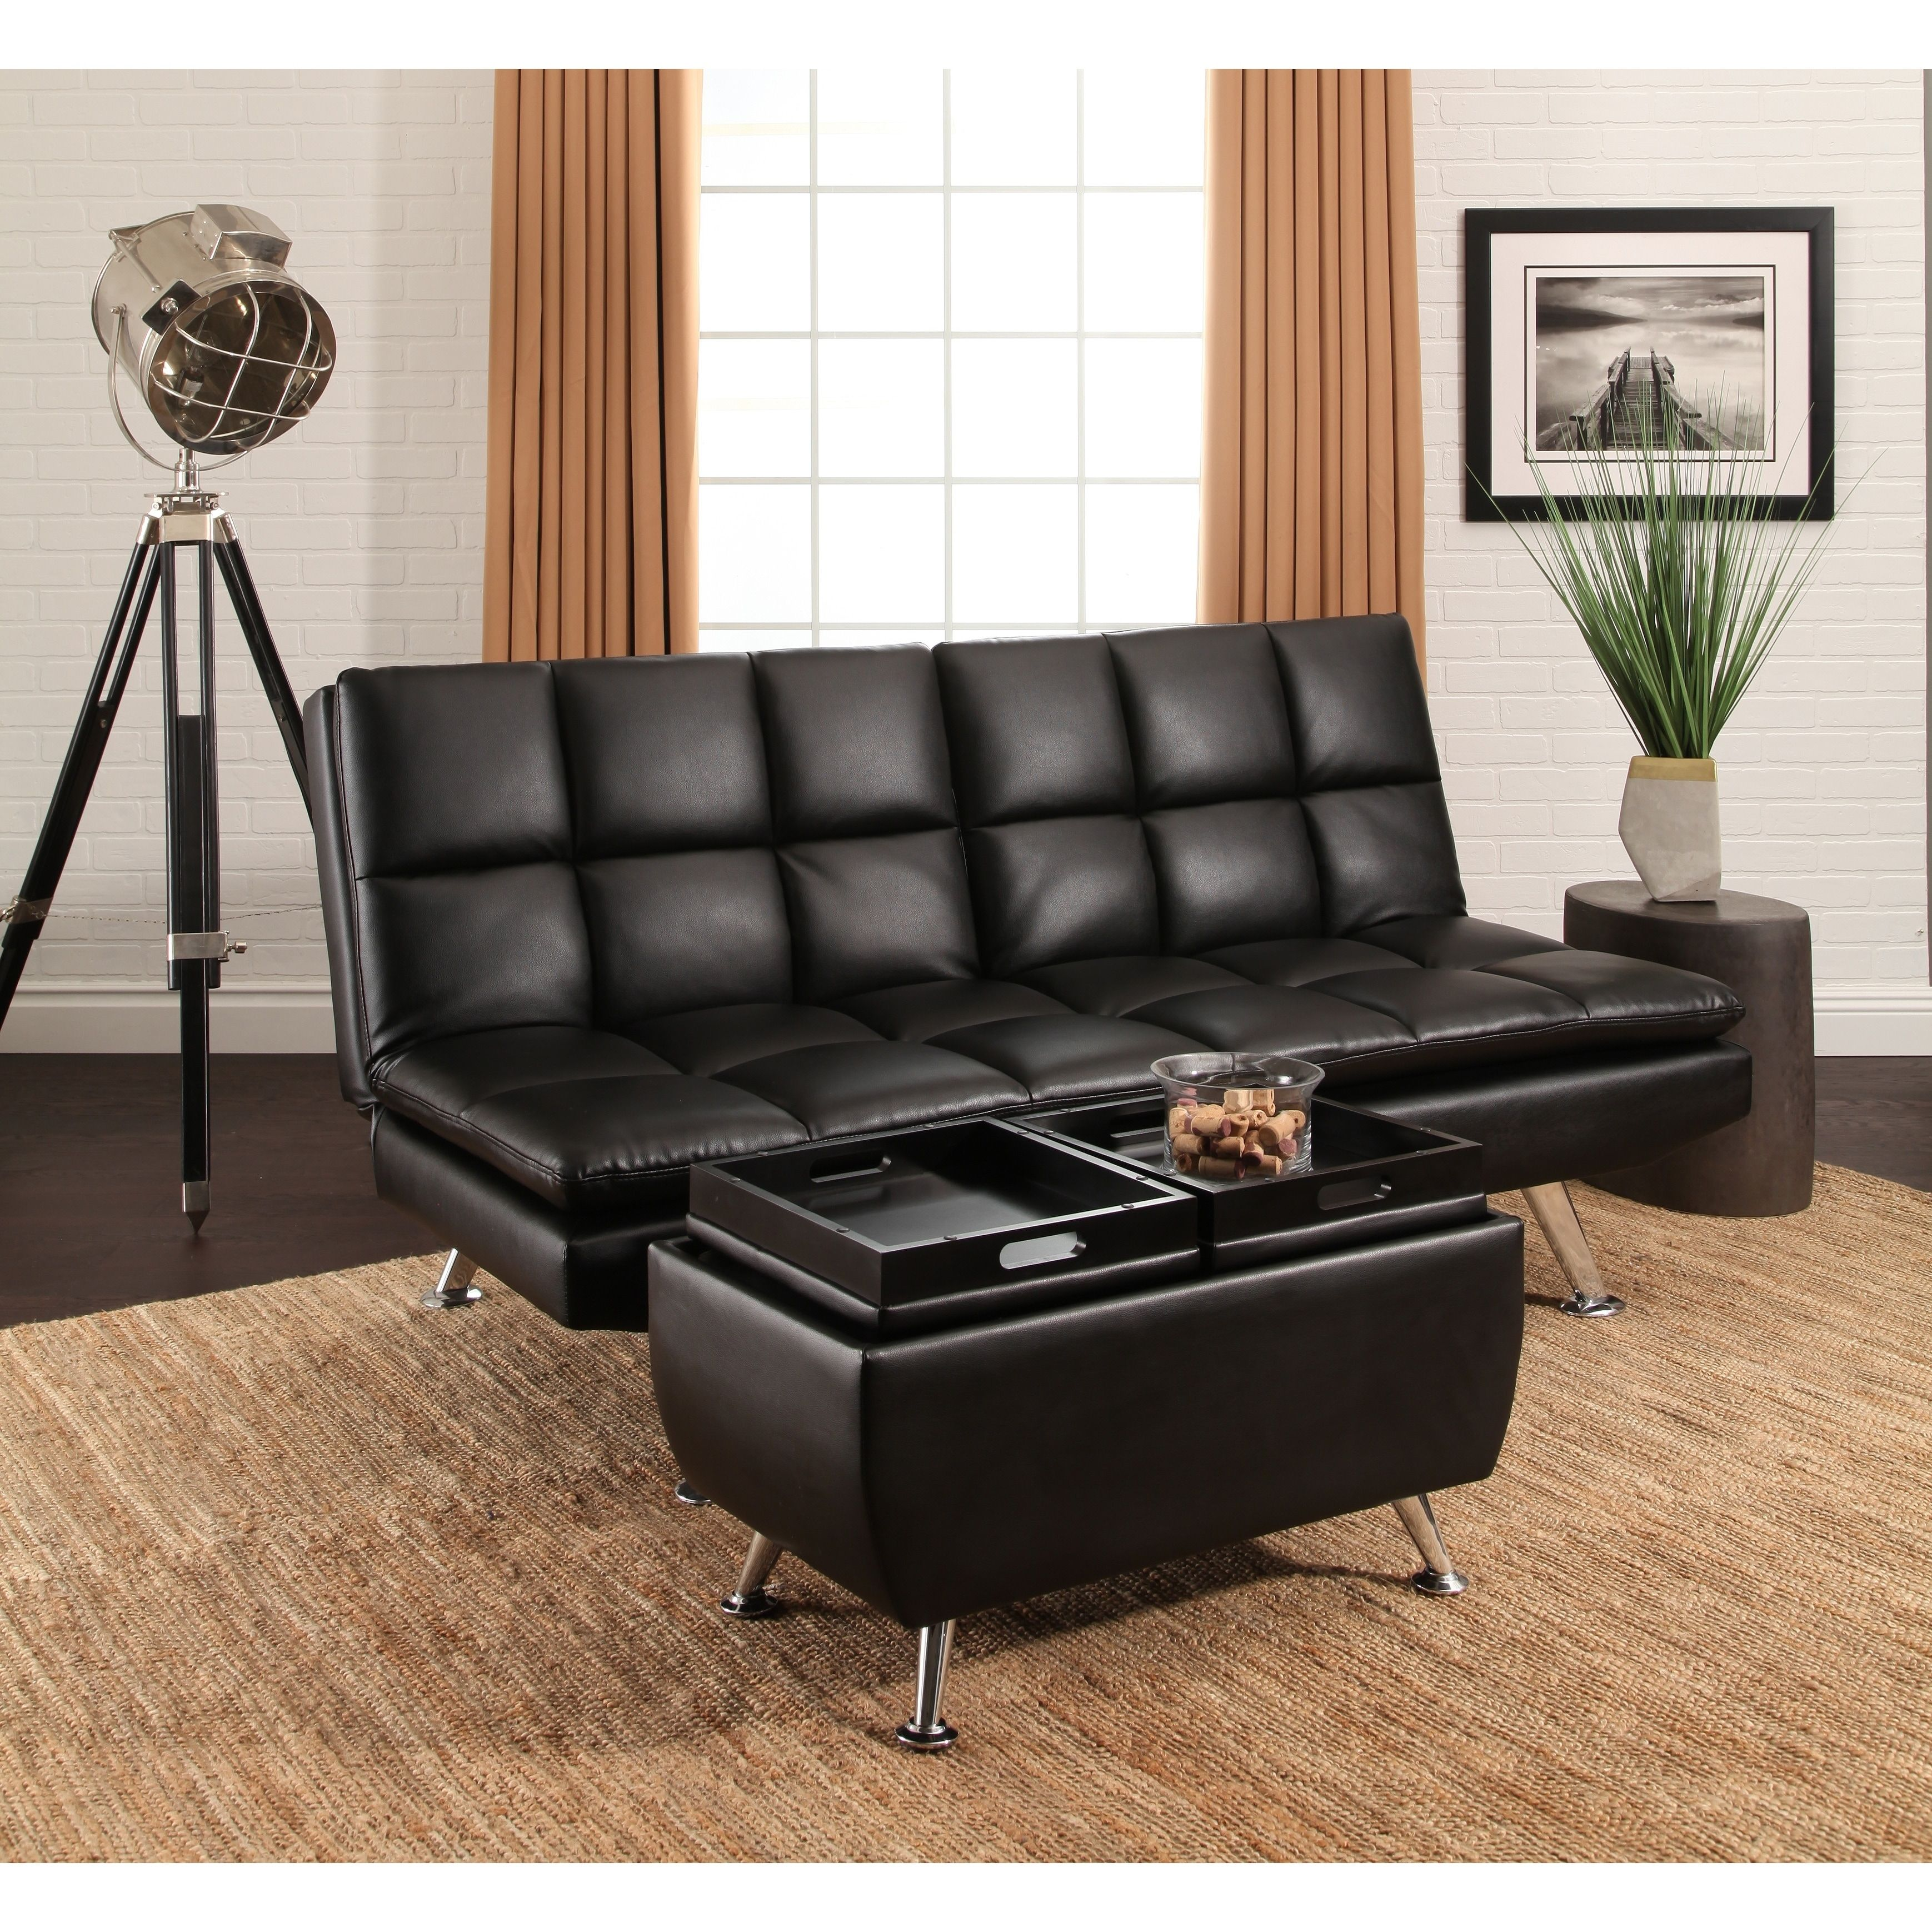 Miraculous Abbyson Brandon Black Bonded Leather Sofa Bed And Ottoman Caraccident5 Cool Chair Designs And Ideas Caraccident5Info